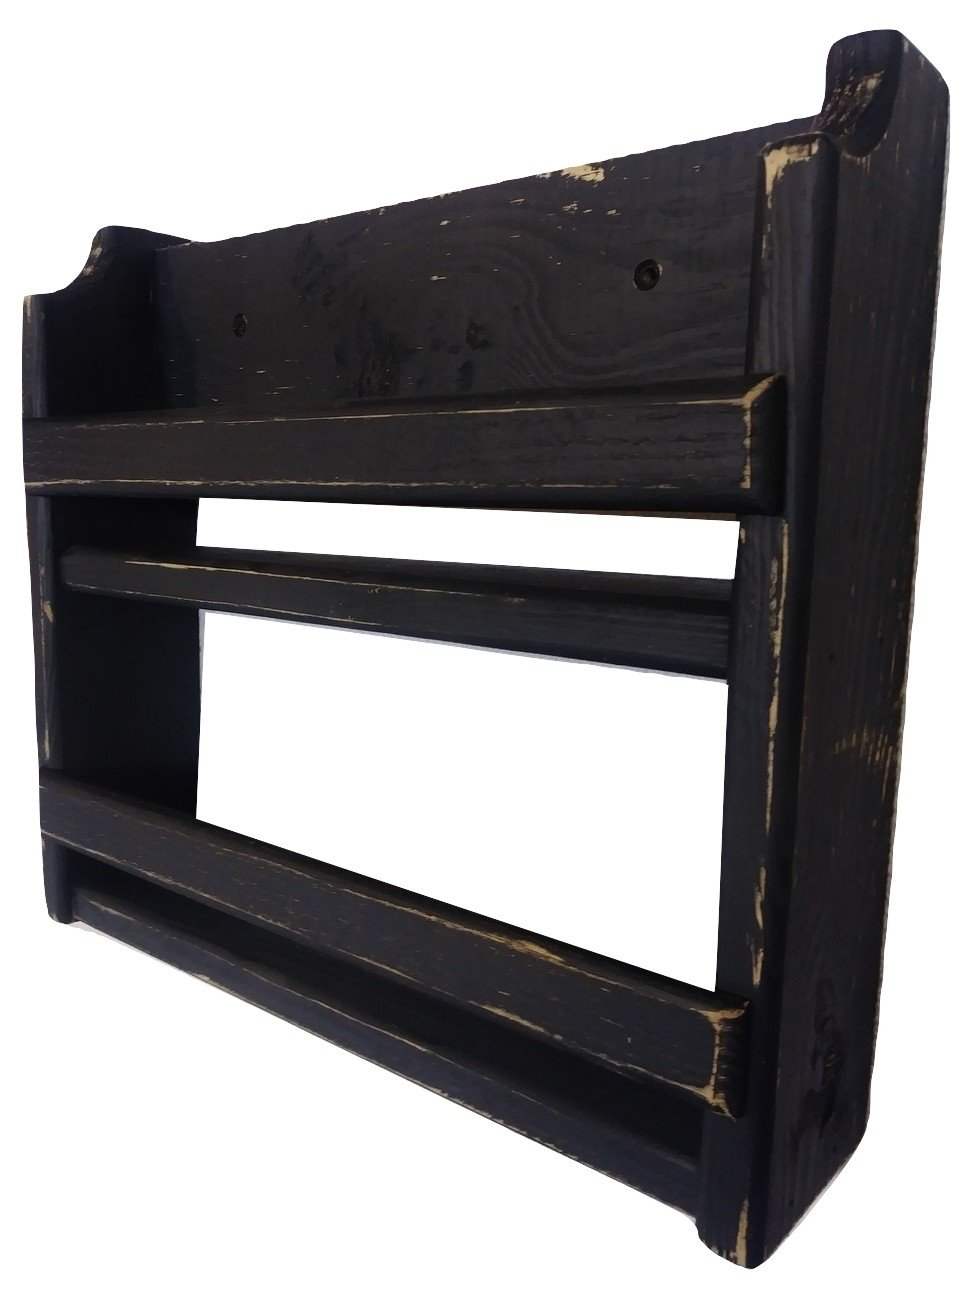 Country Rustic Wood Spice Rack Distressed Finish Wall Mount